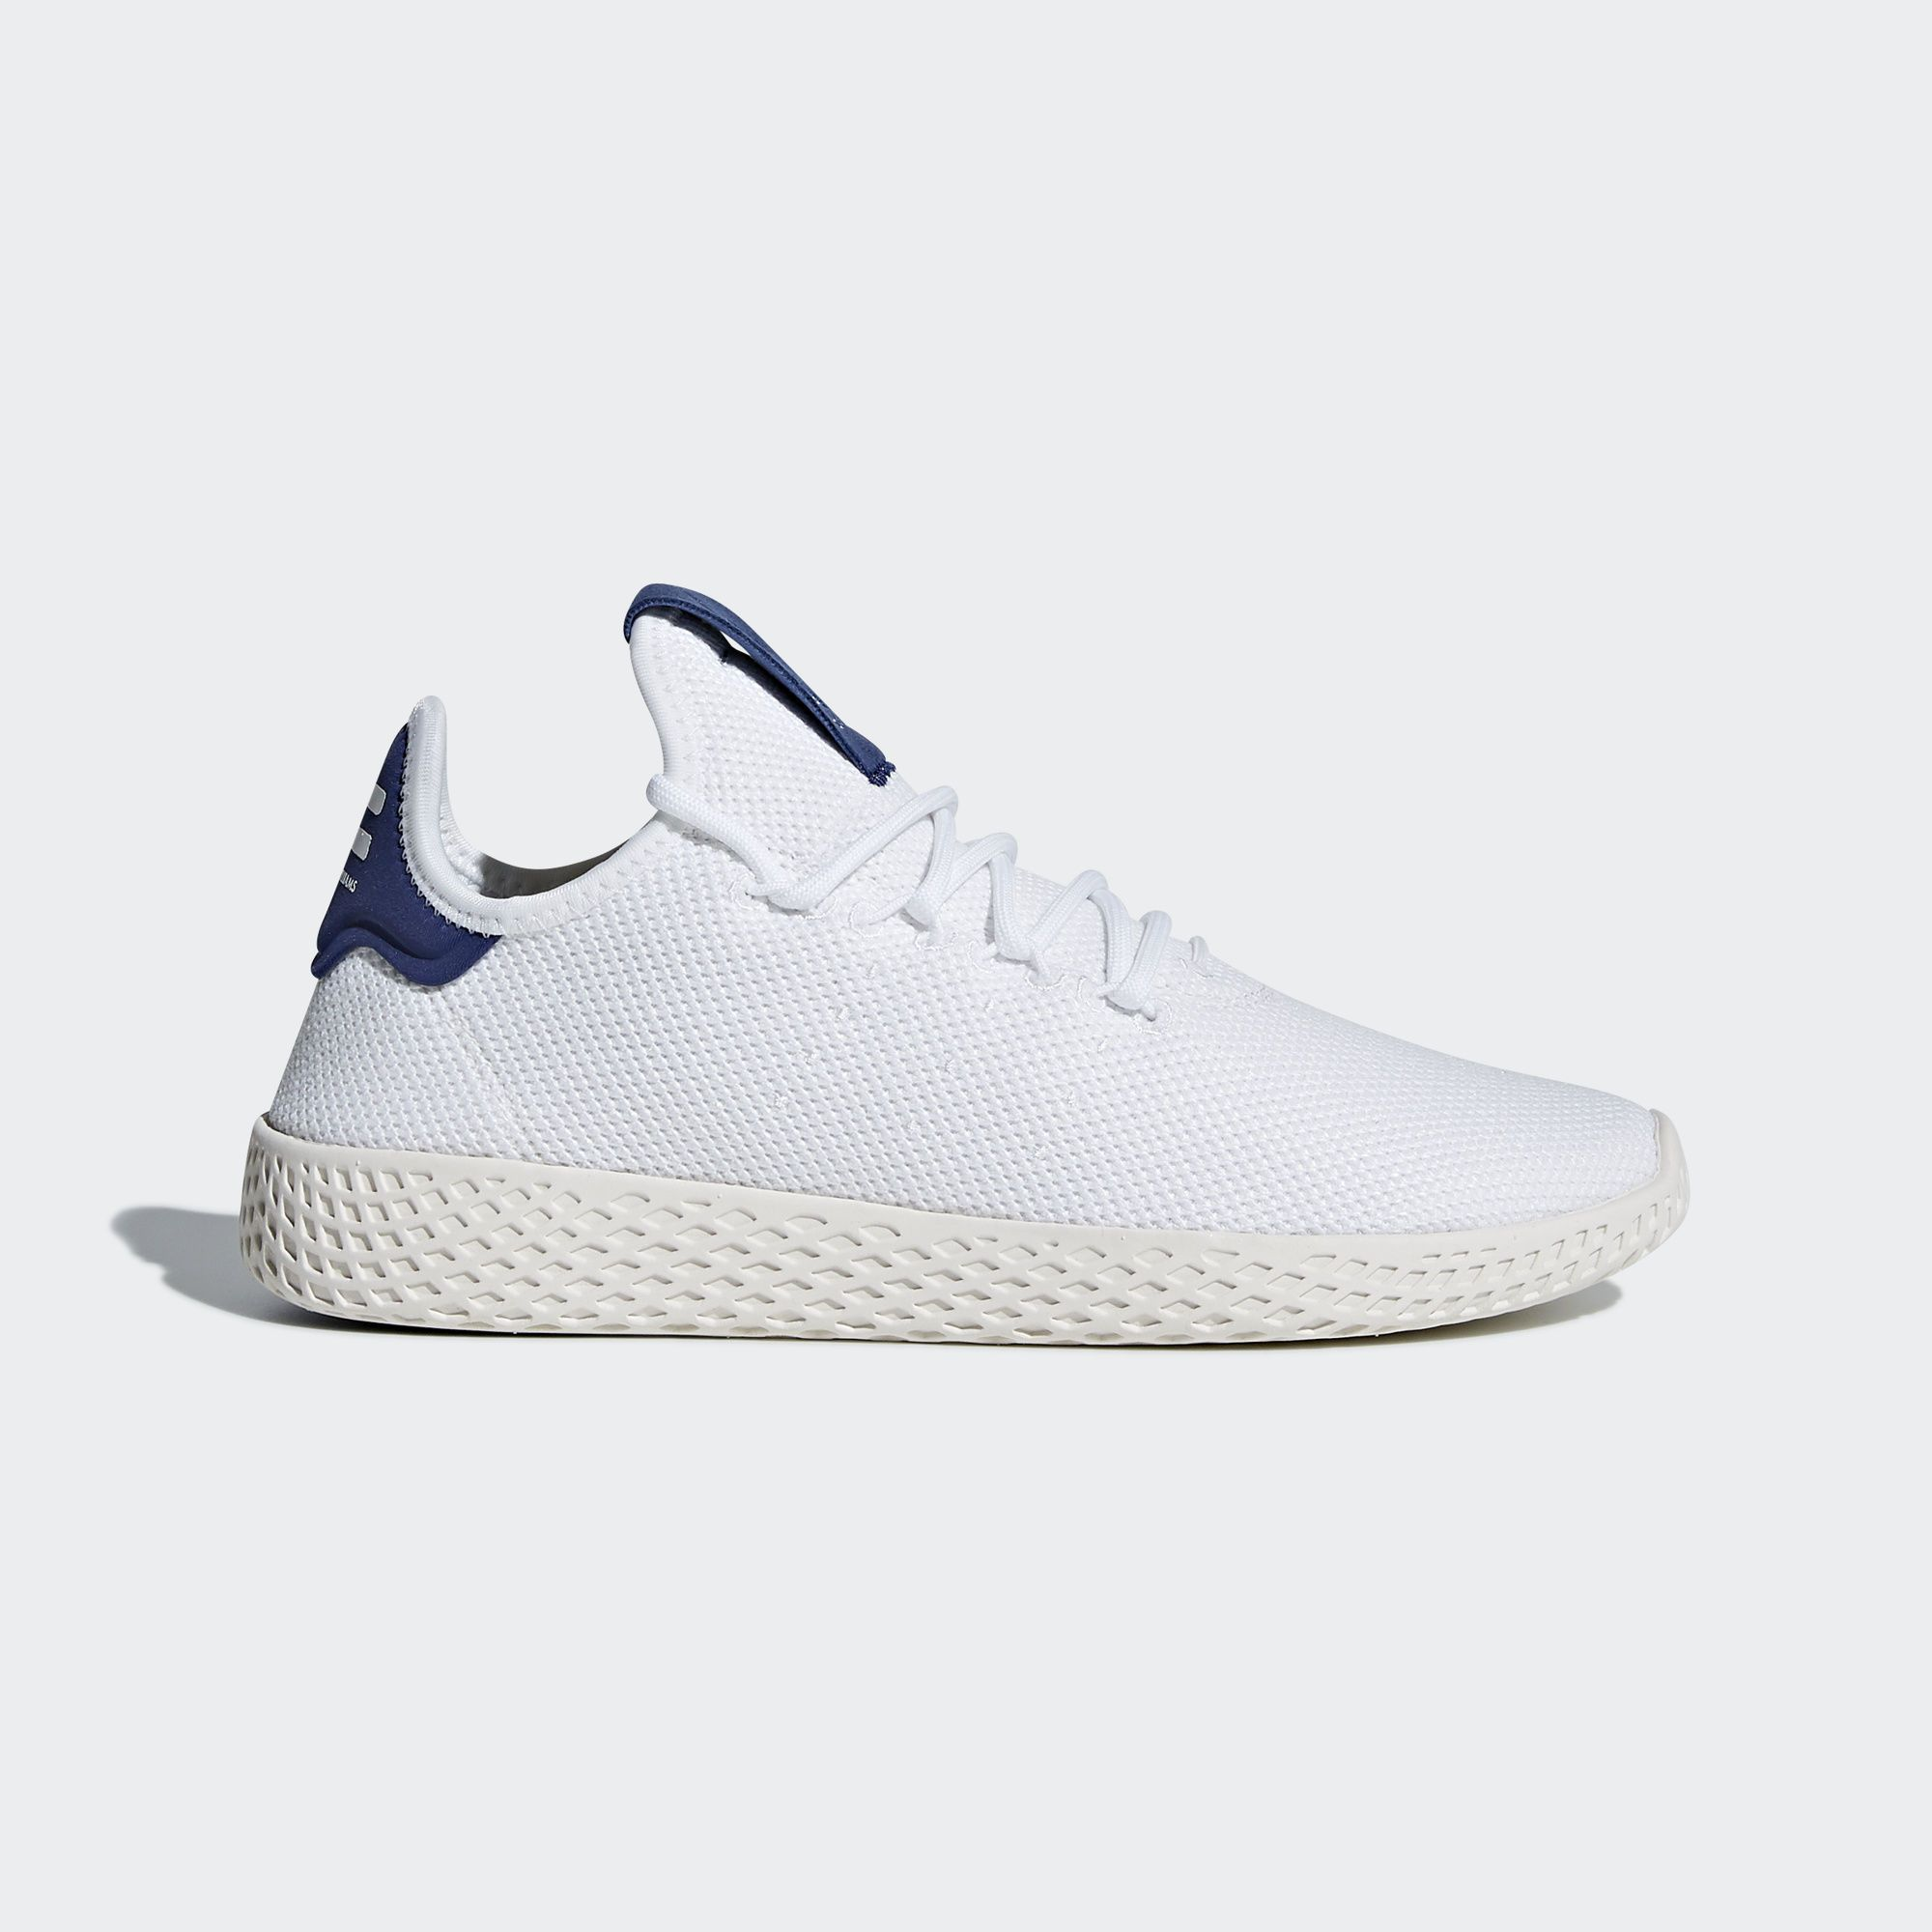 1258b2ca2 Shop the Pharrell Williams Tennis Hu Shoes - White at adidas.com us! See  all the styles and colors of Pharrell Williams Tennis Hu Shoes - White at  the ...